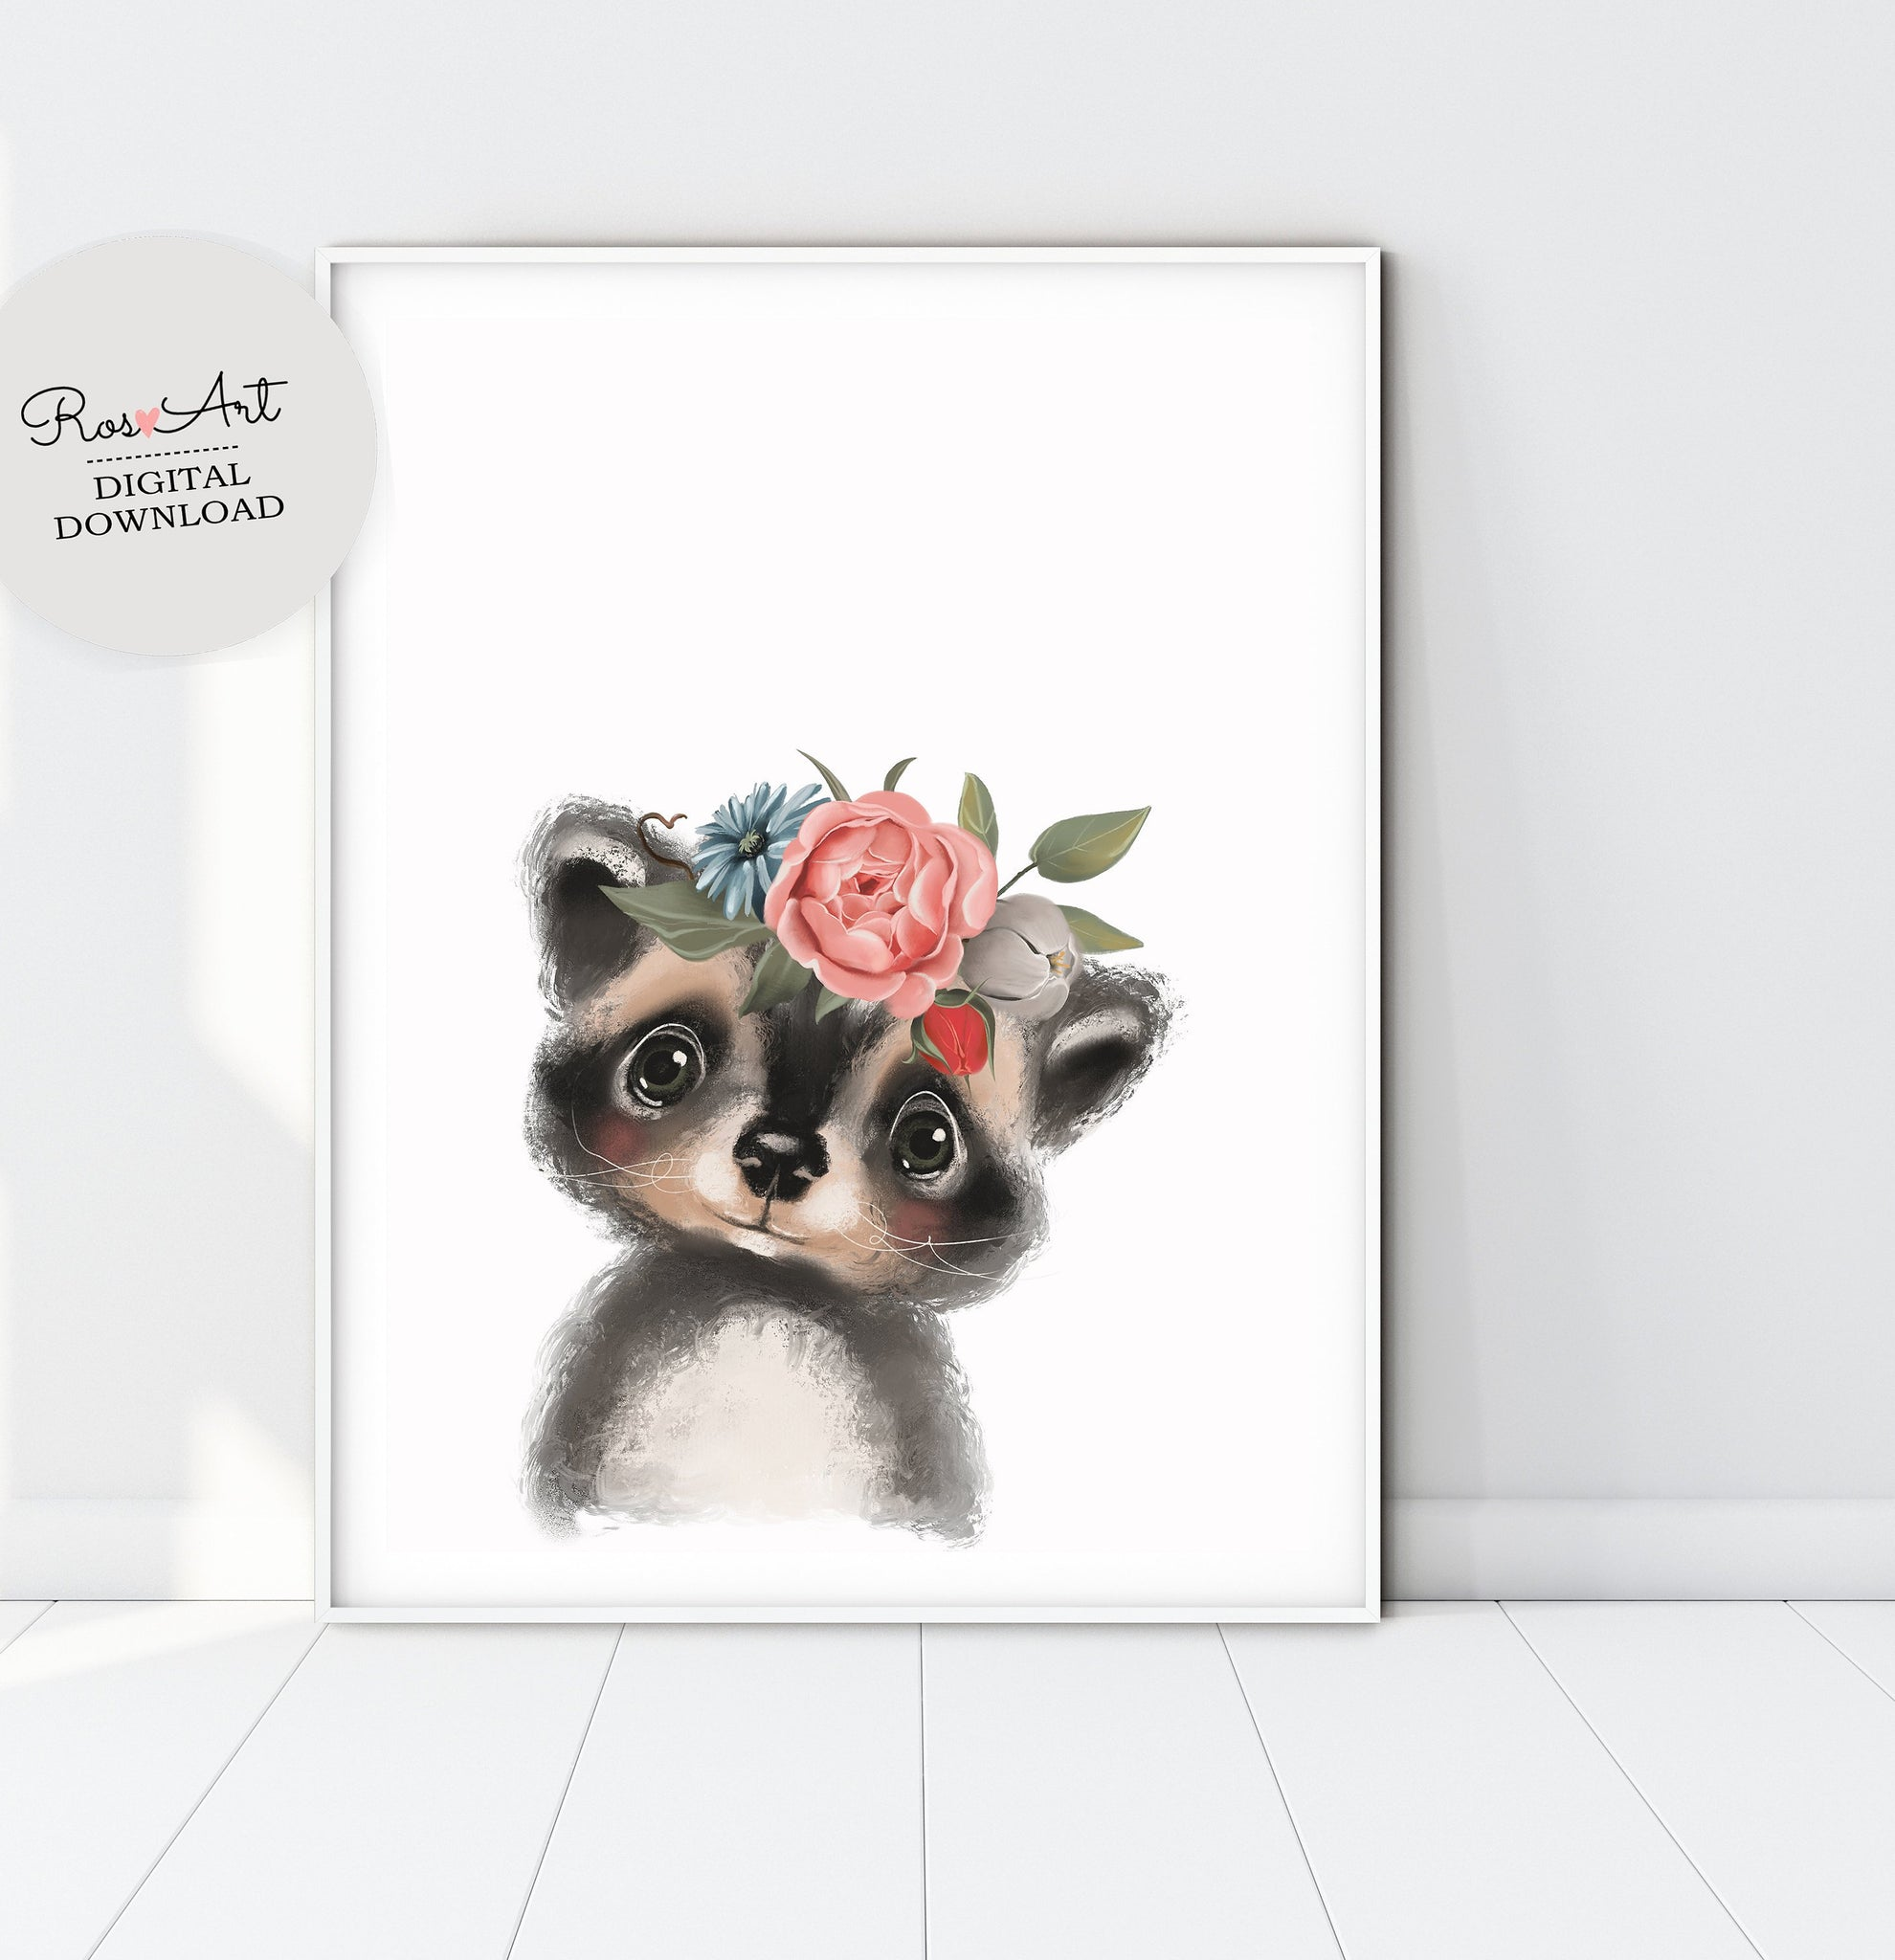 Raccoon Wall Art Raccoon Portrait, Rabbit Nursery Print, Raccoon Printable, Raccoon Print, Cute Raccoon - Ros Ruseva